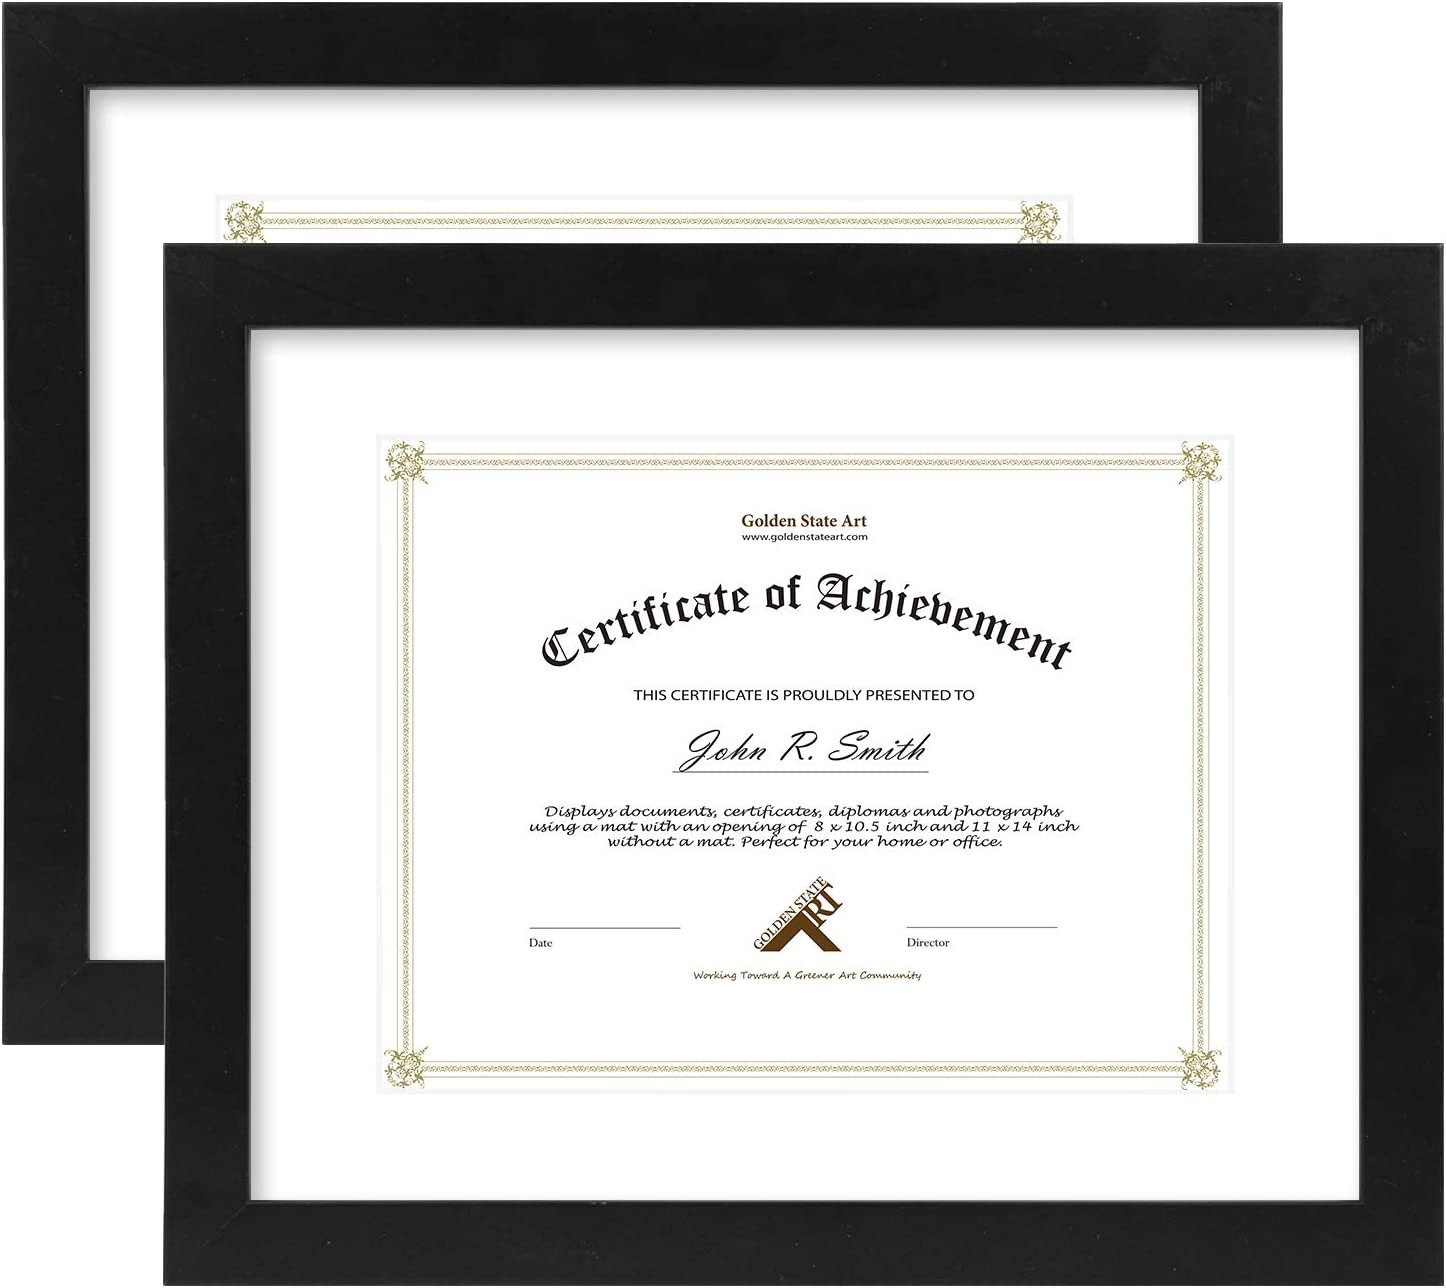 Golden State Art, 11x14 Document/Photo Wood Frame for 8.5x11 Document & Certificates, Real Glass, Black with Single White Mat (2-Pack)